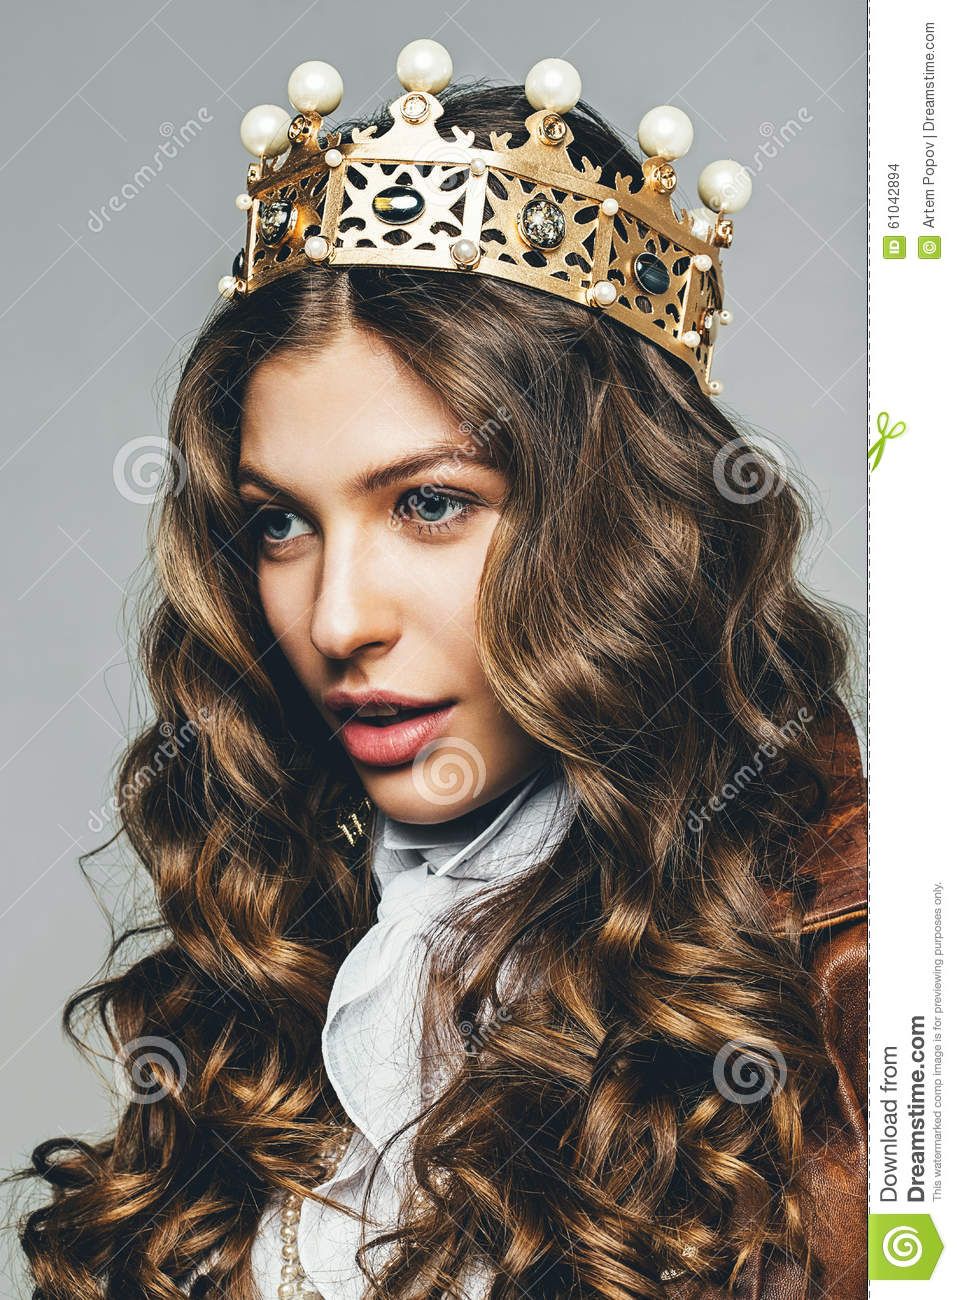 Woman In Golden Crown With Curly Hair Stock Photo Image